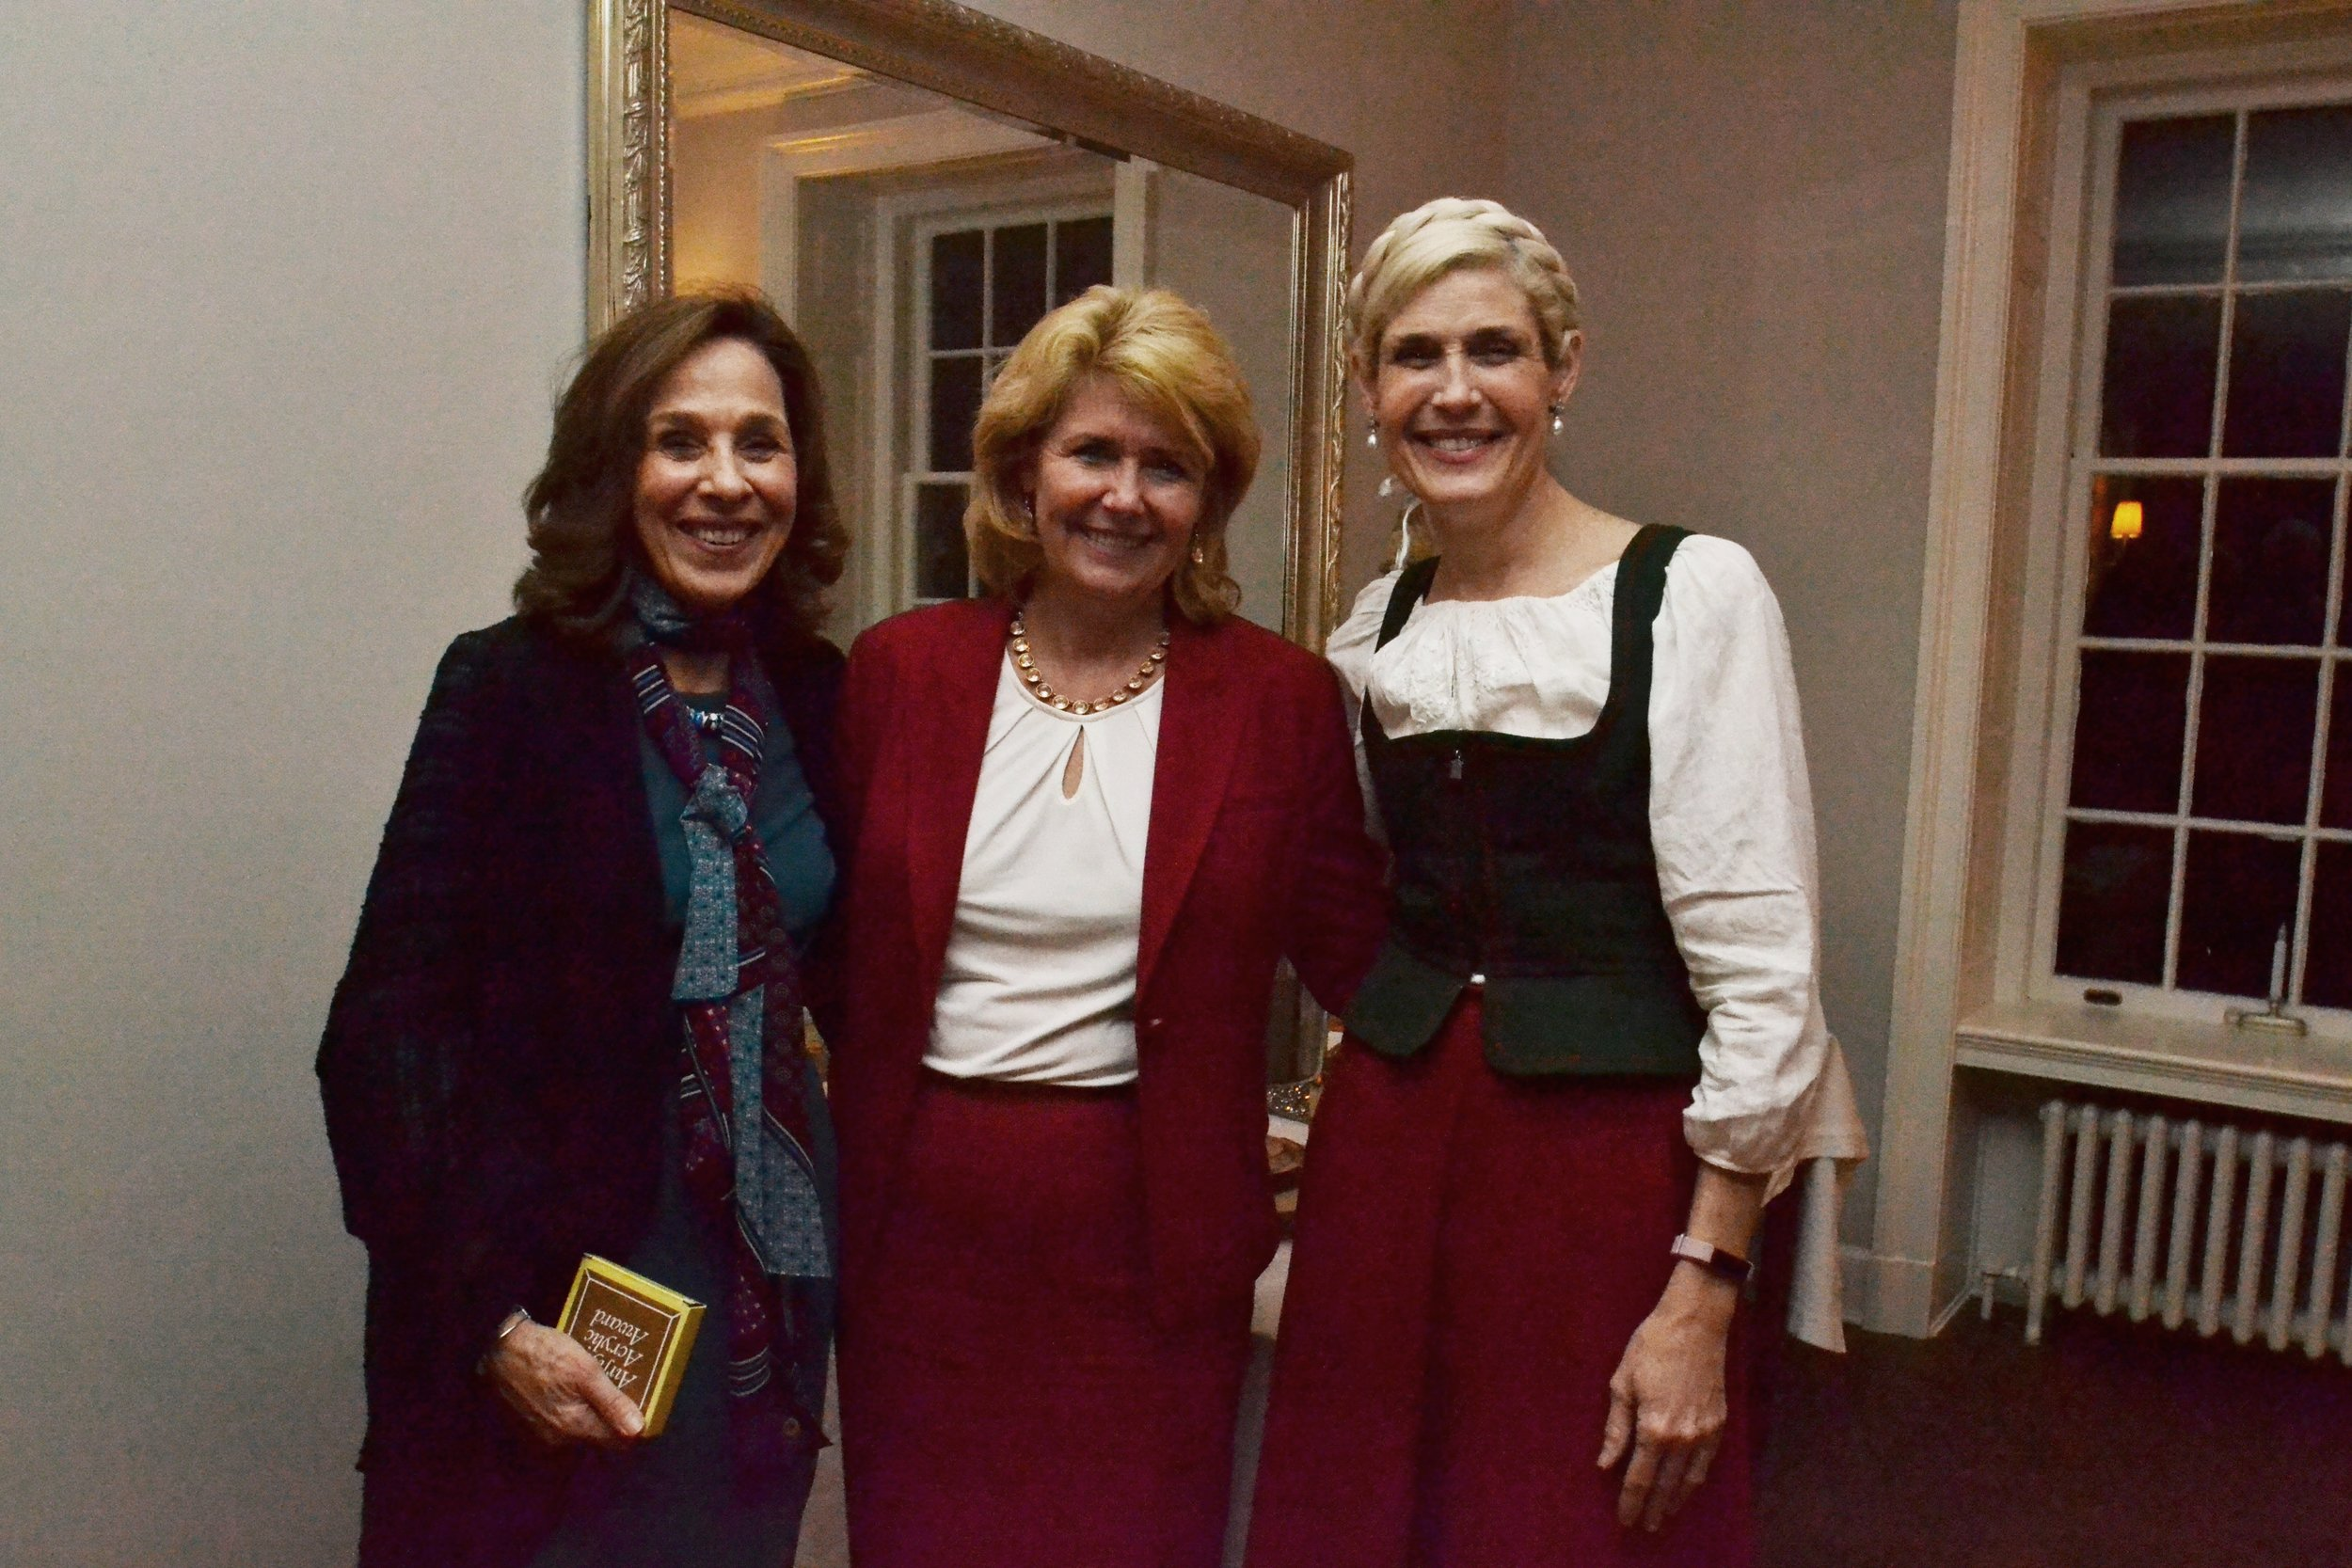 L-R Carol Carpenter Senior Major Gifts Officer Good Shepherd, Anne Baum Vice President Capital Blue Cross and Laura Bennett Shelton Vice Chair R.K.Laros Foundation